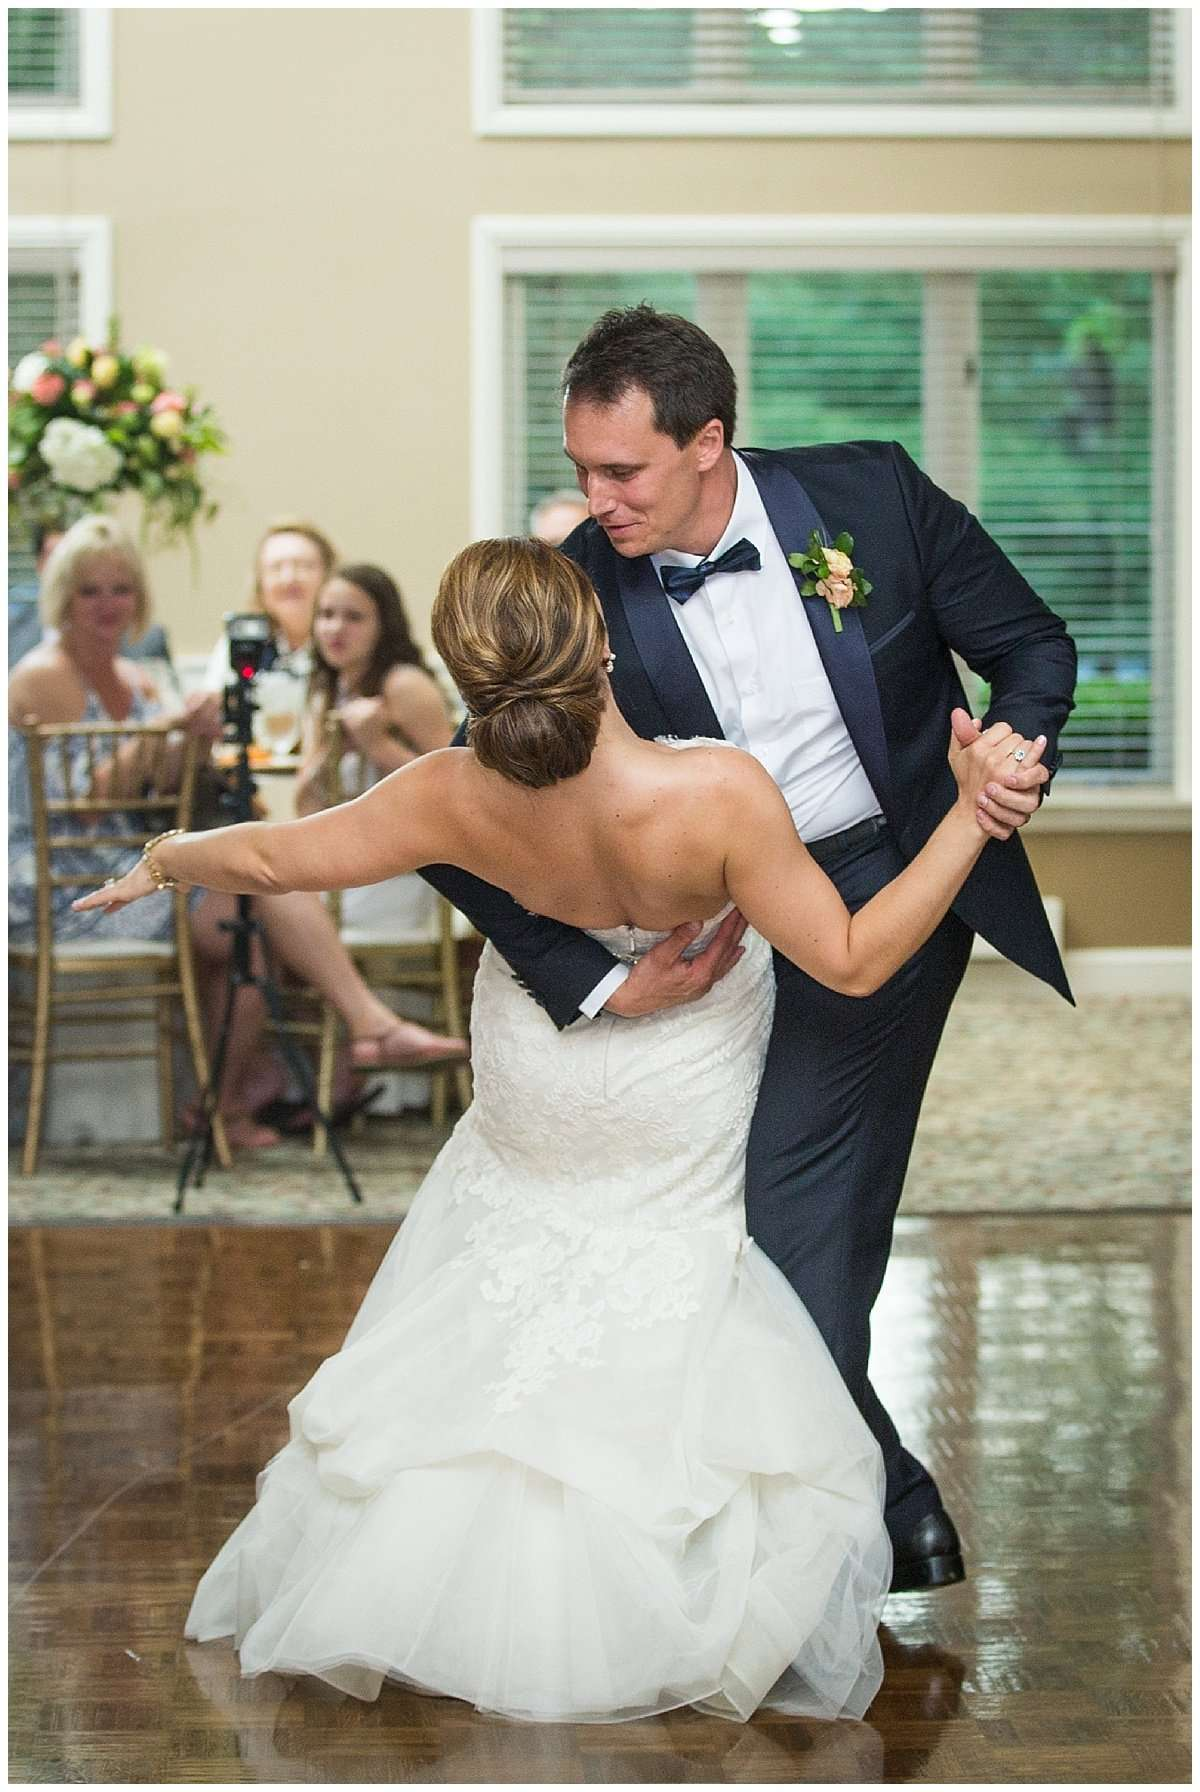 Kim & Lee | A Summer Wedding at Brookside Country Club 186